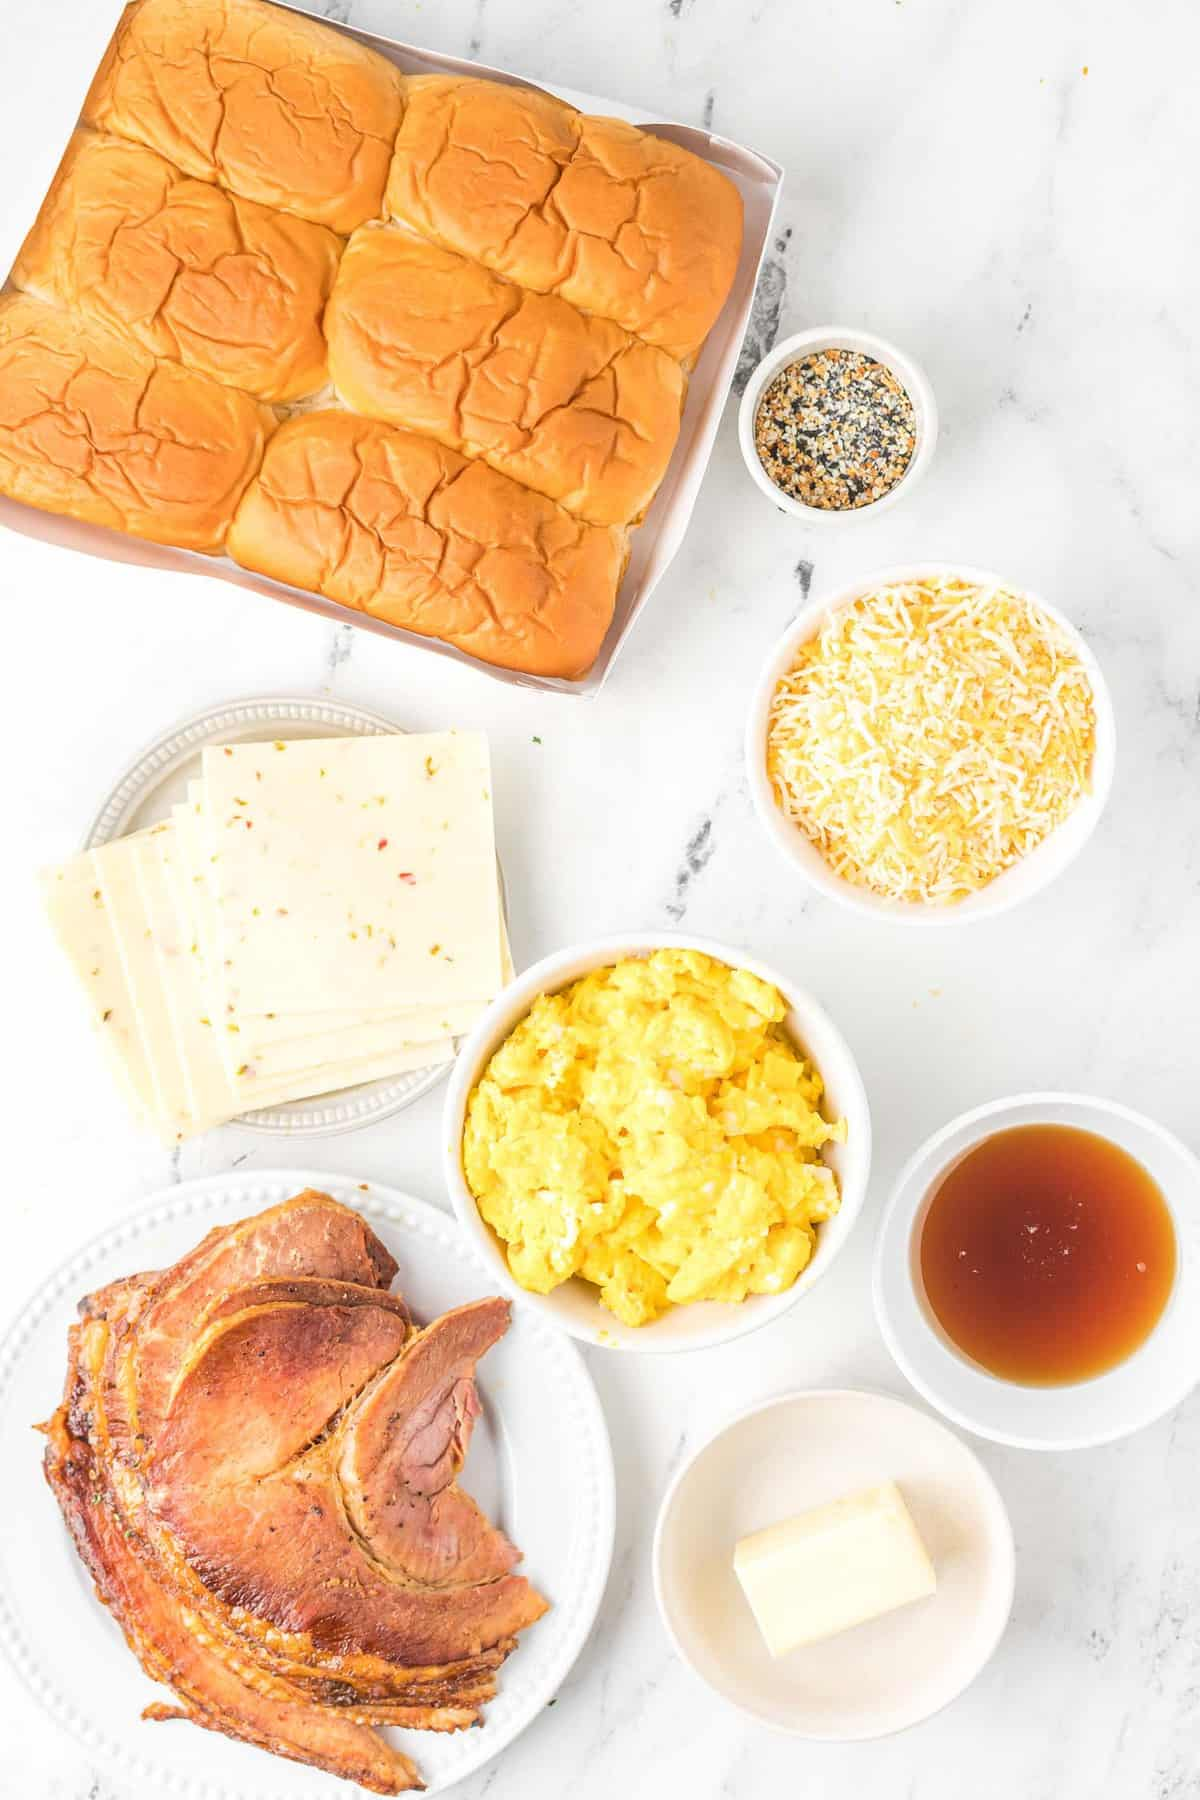 Overhead view of ingredients: rolls, ham, eggs, cheese, maple syrup, butter, and everything bagel seasoning.